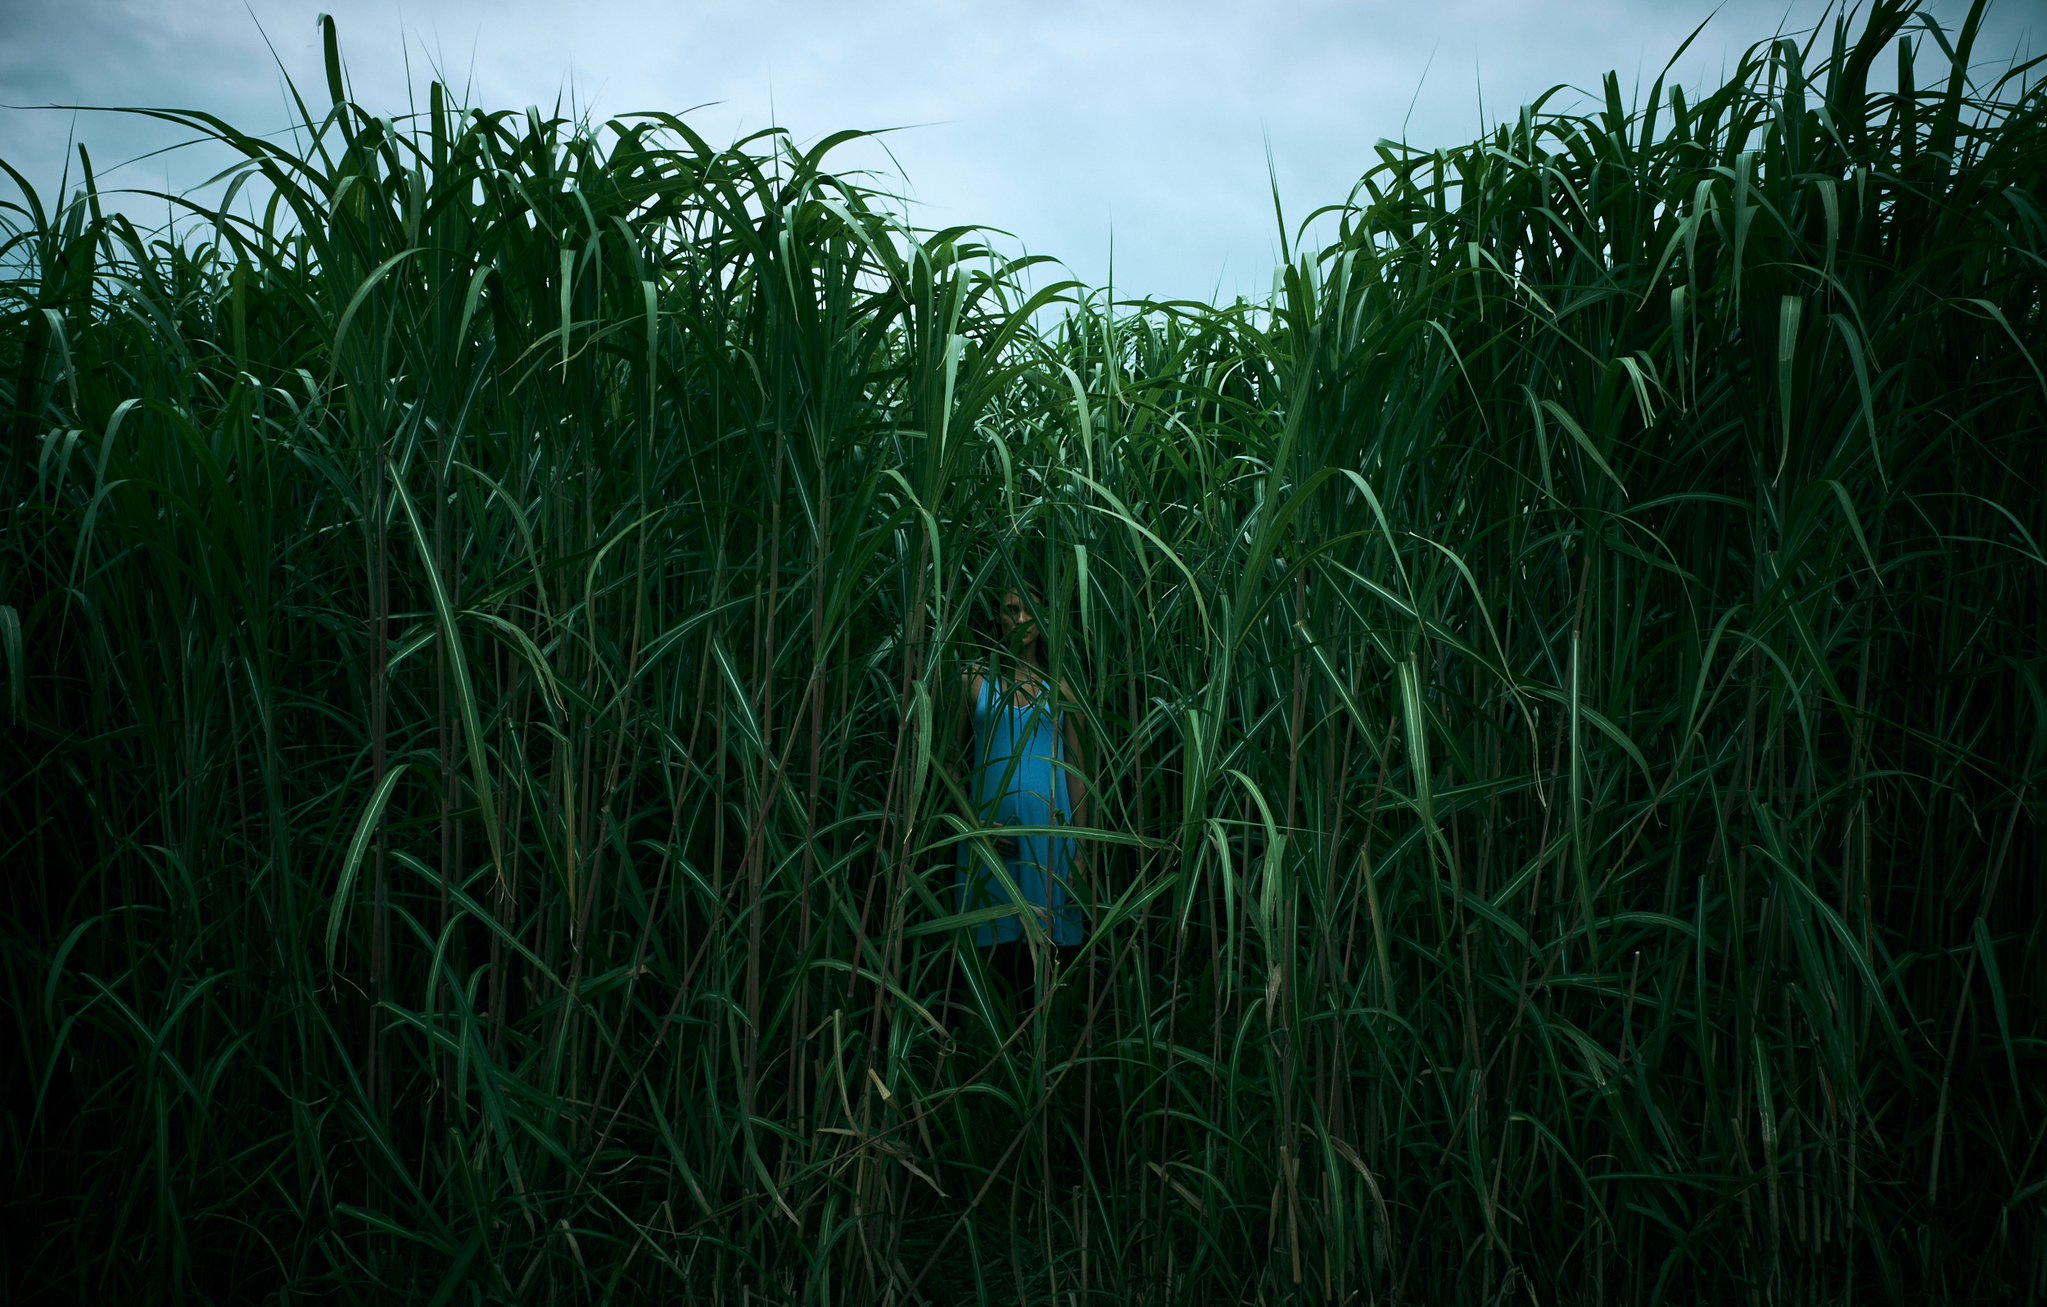 In The Tall Grass.jpg